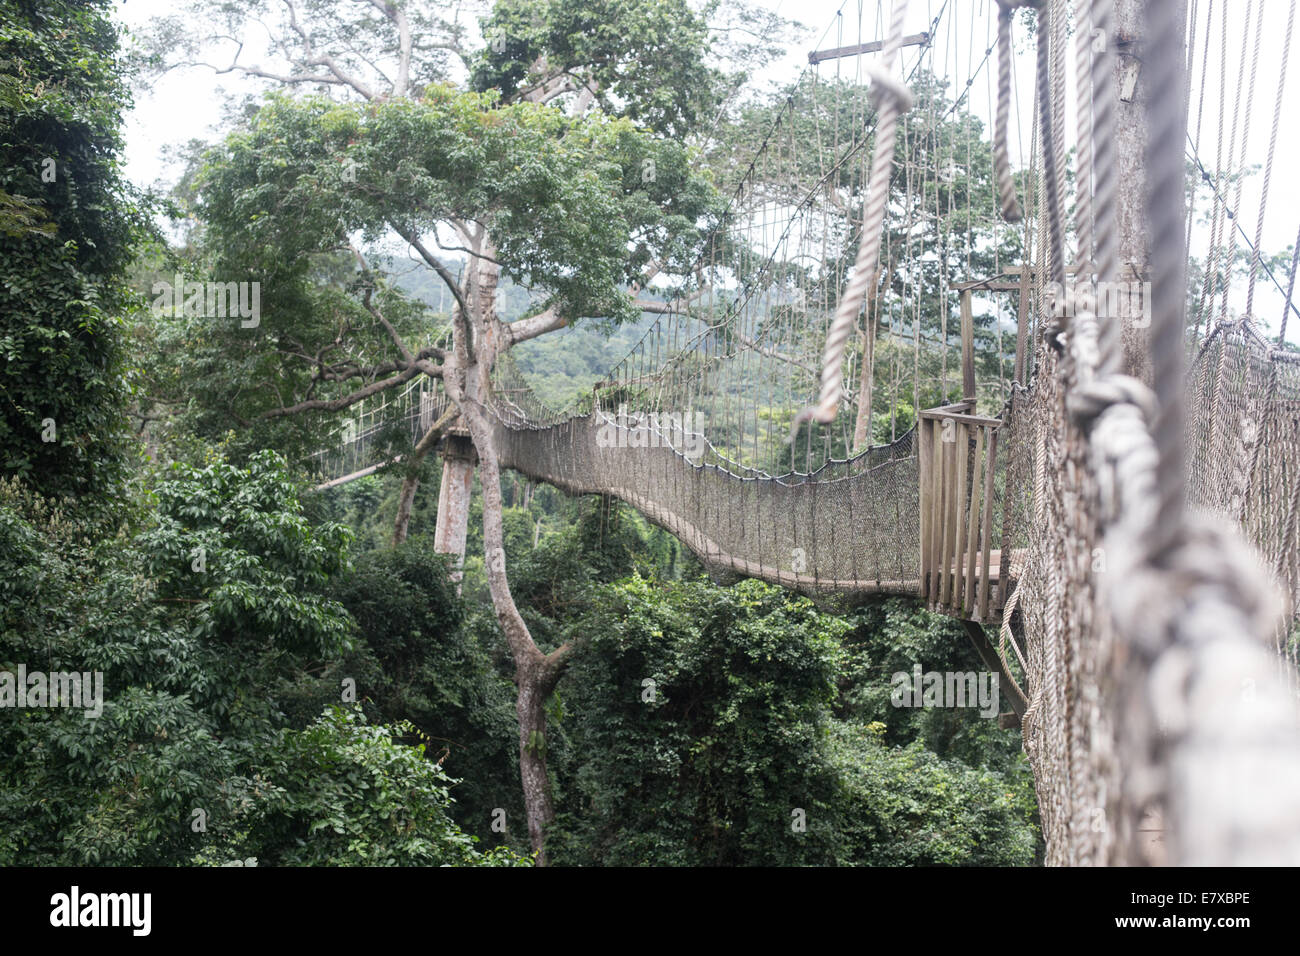 rope bridge connecting trees in kakum national park - Stock Image